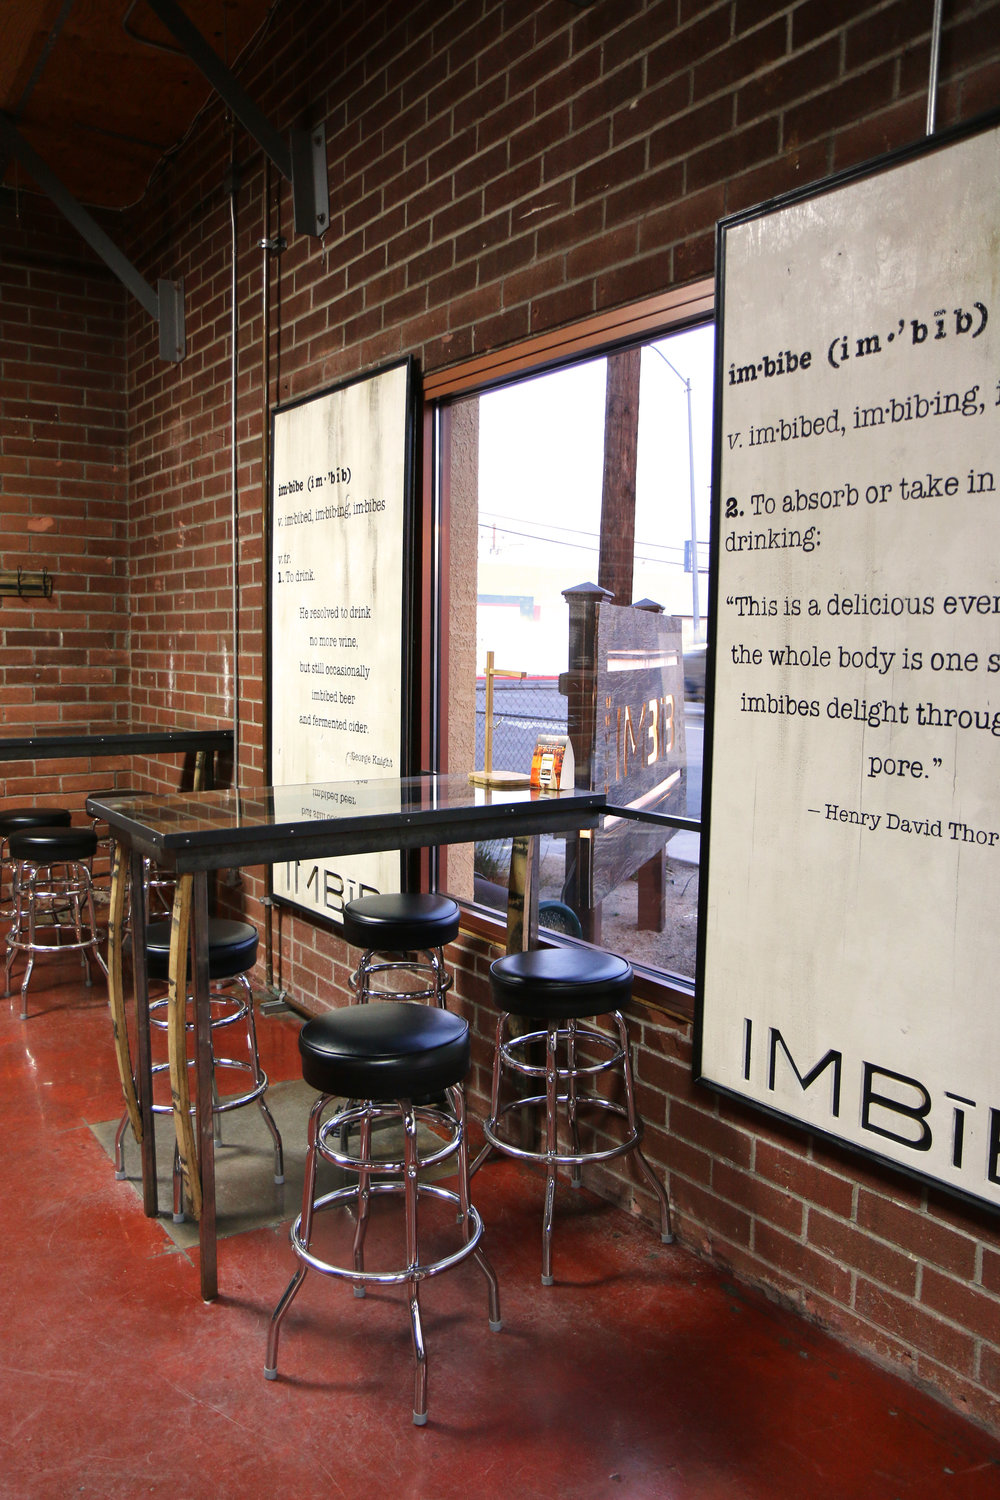 IMBĪB Custom Brews in Reno, Nevada